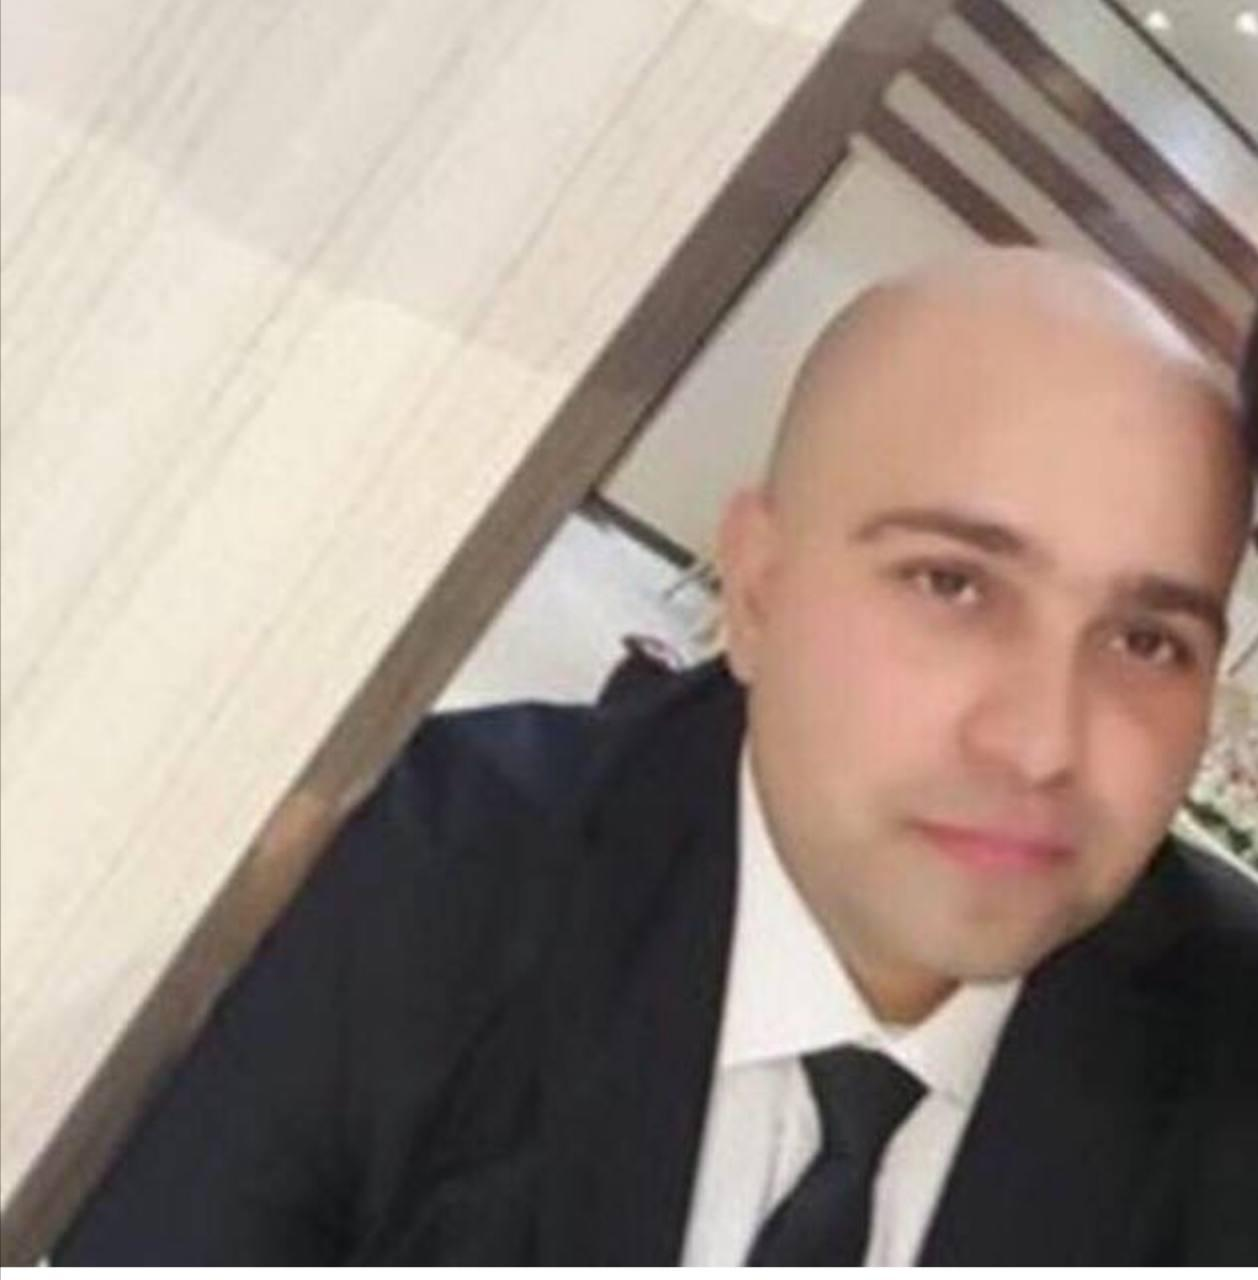 The Unique Pioneer From The Financial Services Industry: Bahador Karbasiuon